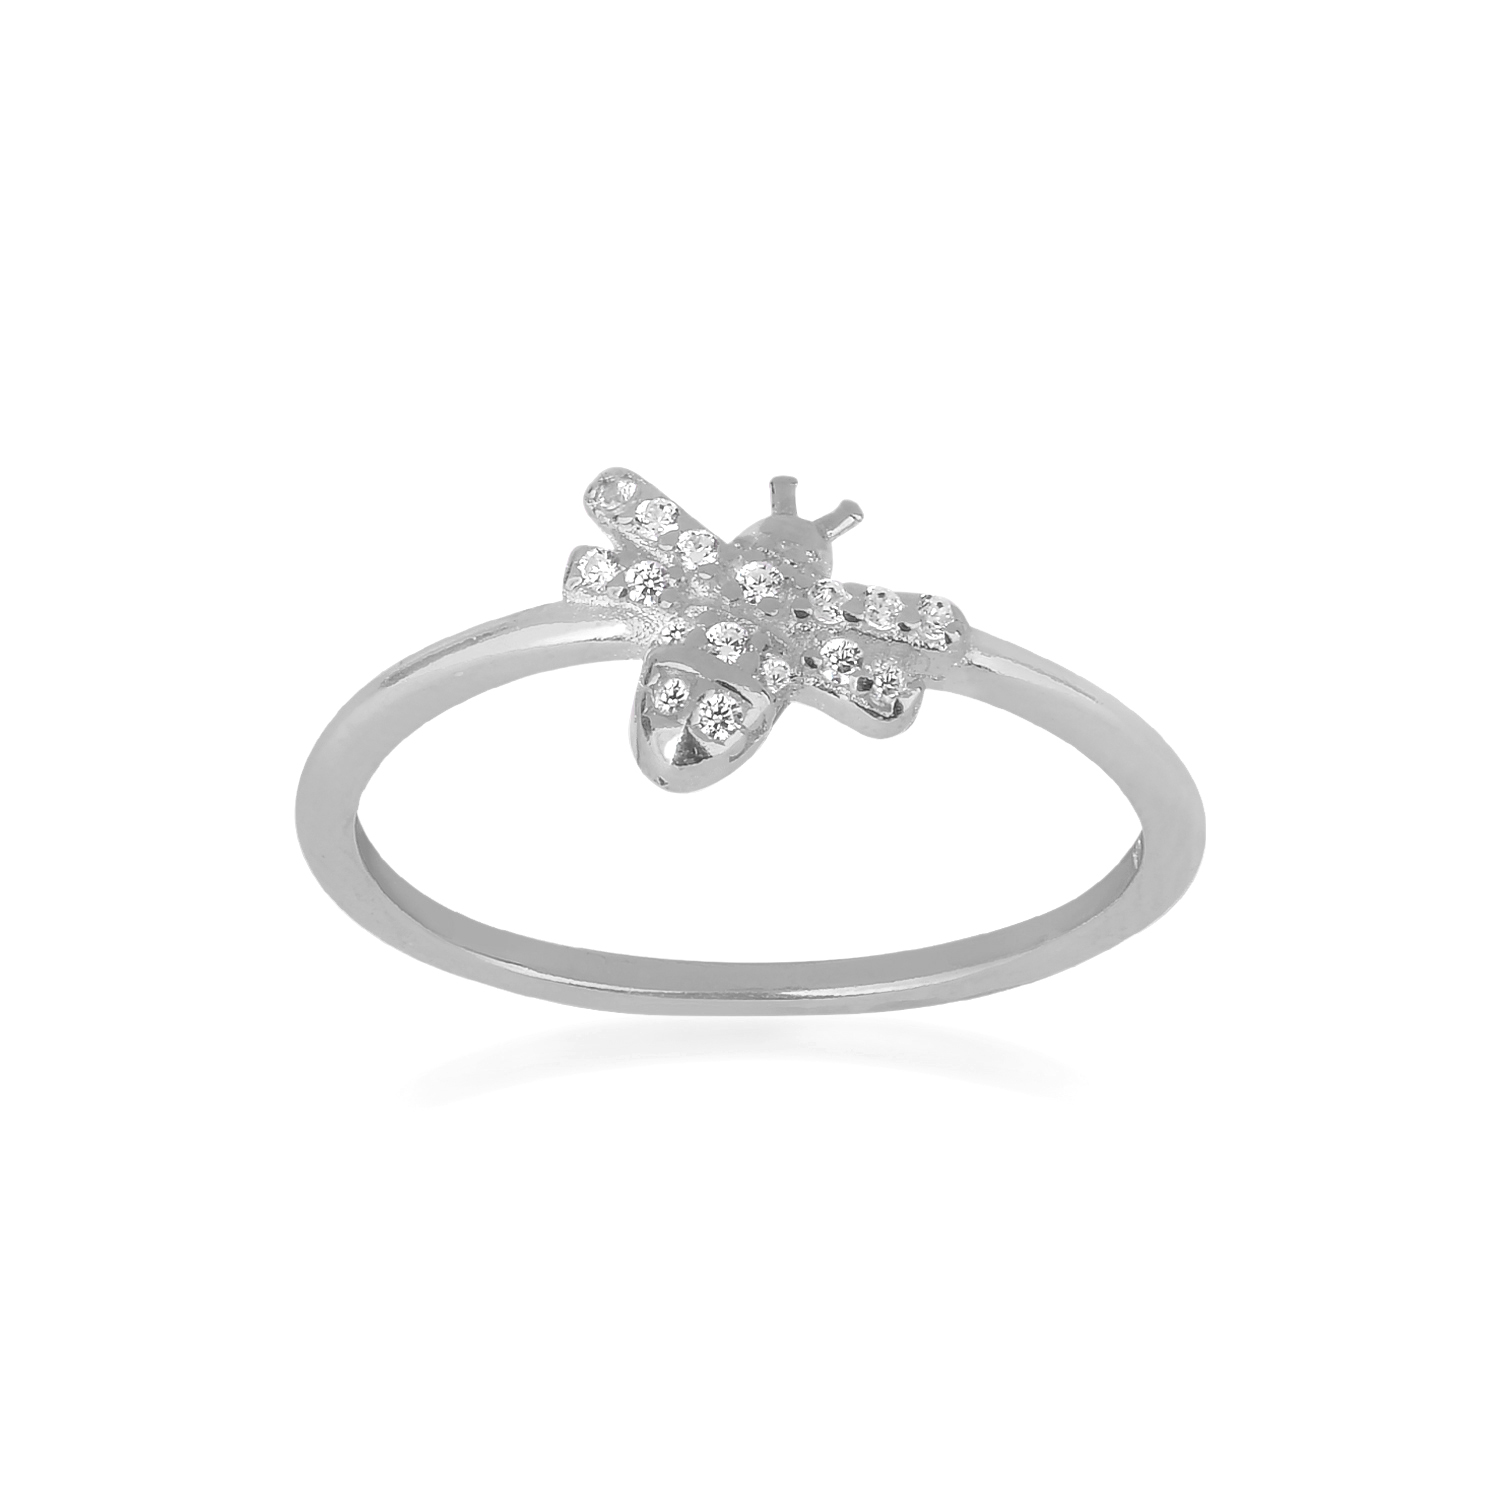 cosar-silver-925-sterling-silver-bea-ring-with-zirkon